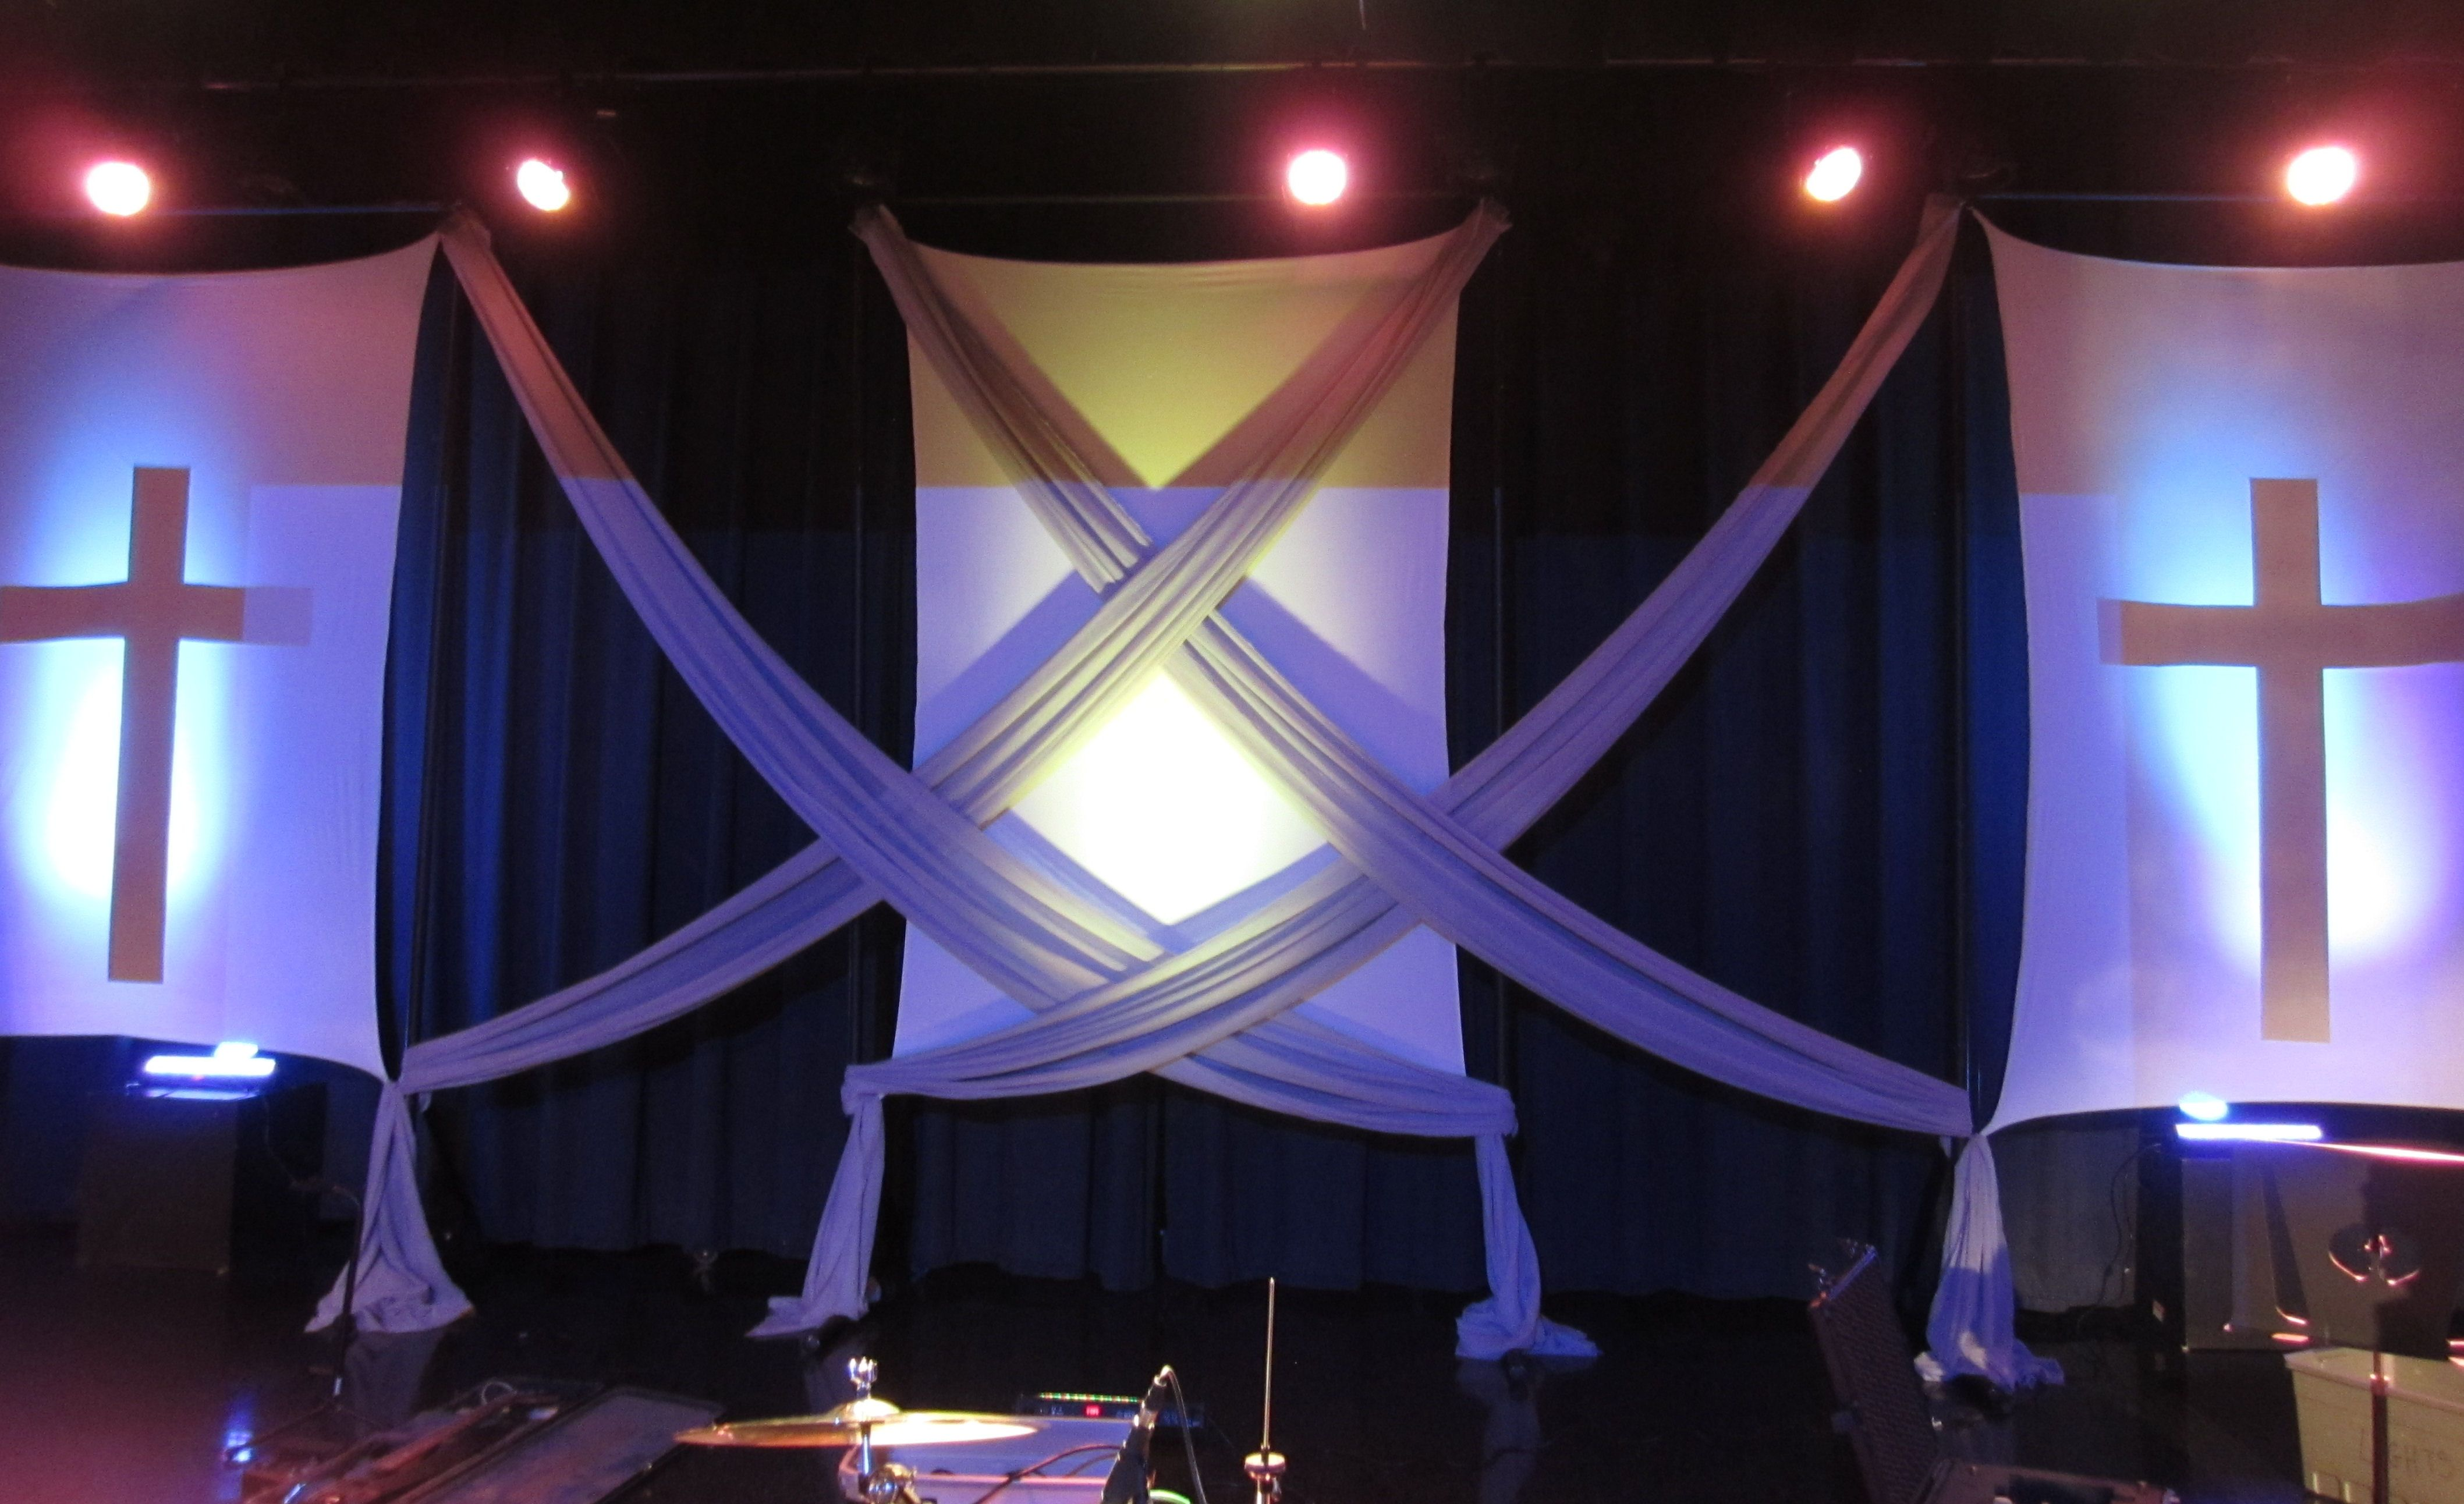 Easter Church Stage Ideas | found on churchstagedesignideas com ...